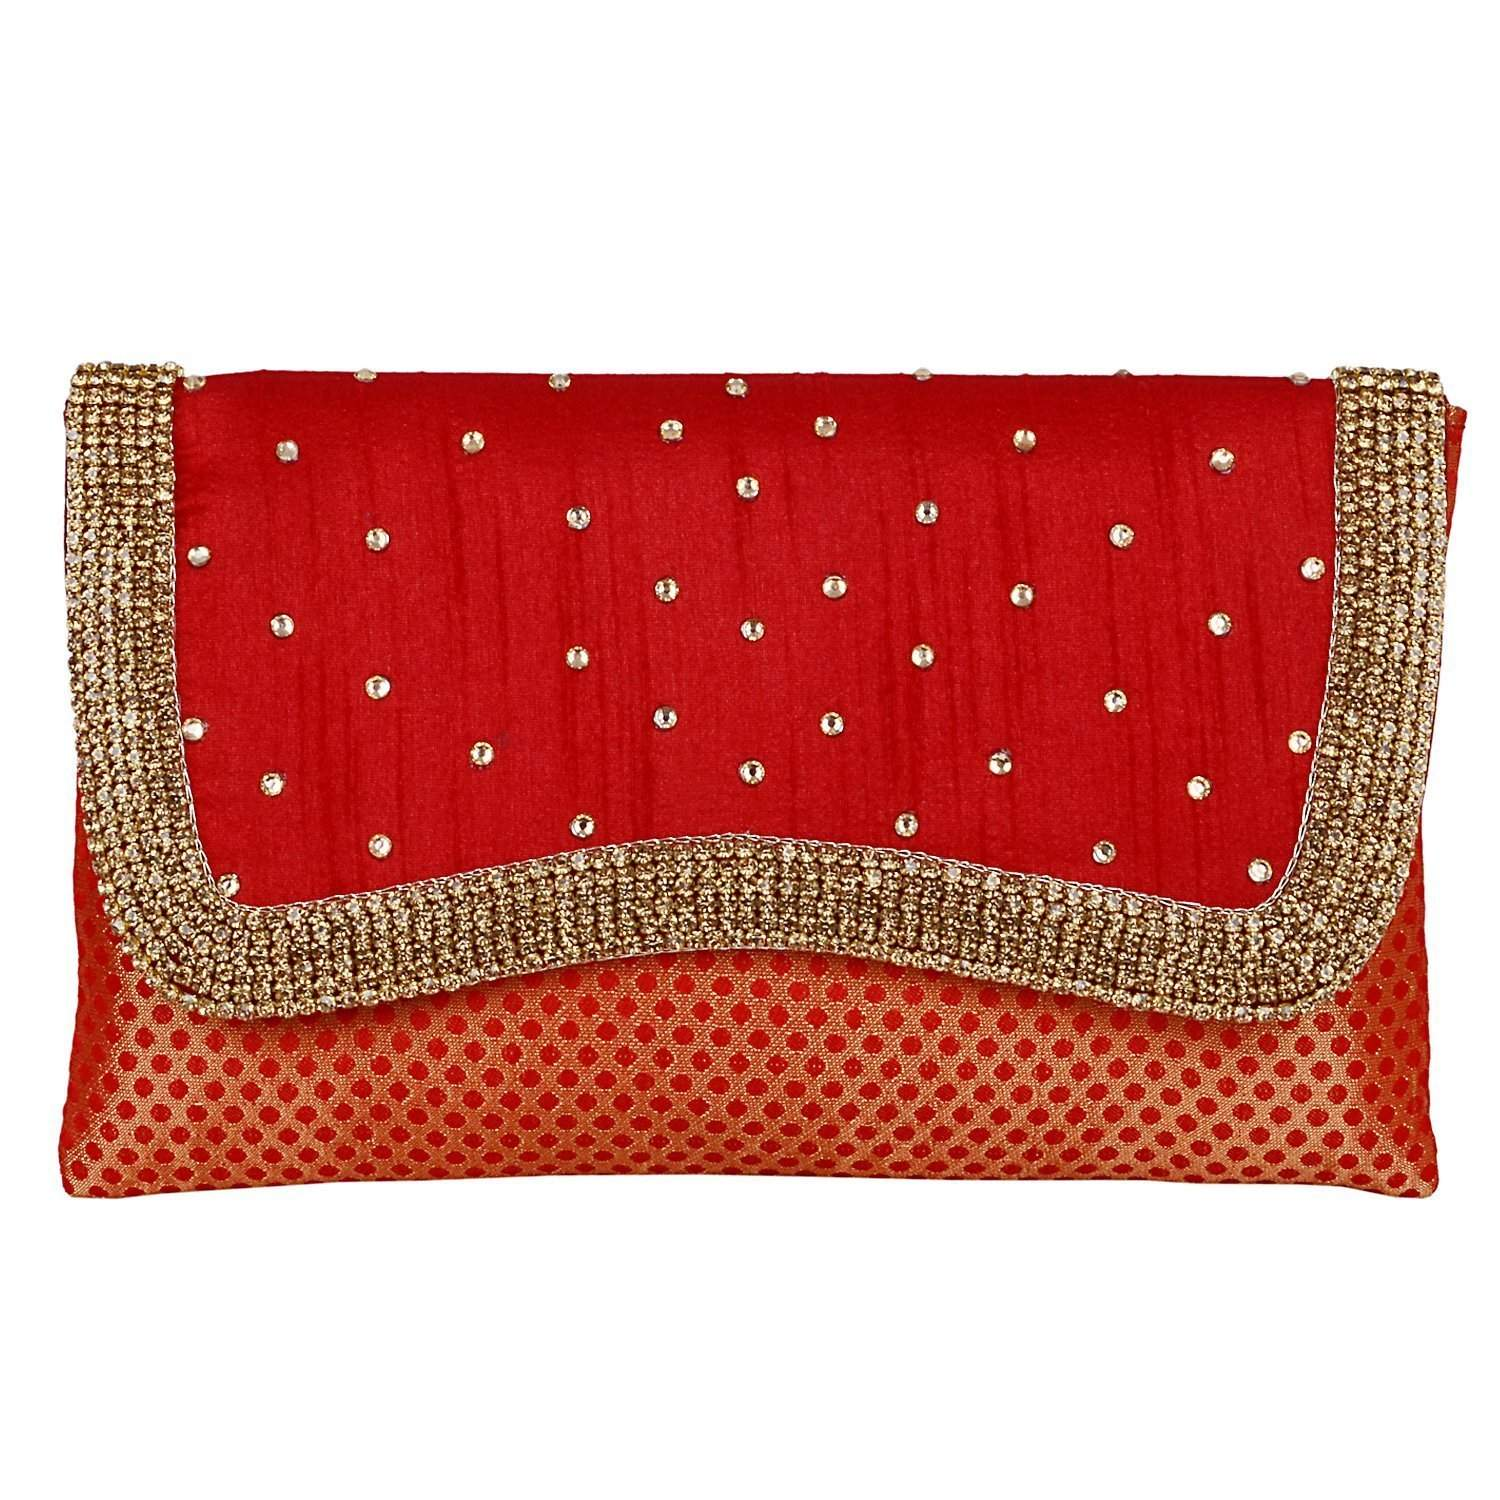 Ethnic Embroidery Clutch (Red) - Bagaholics Gift